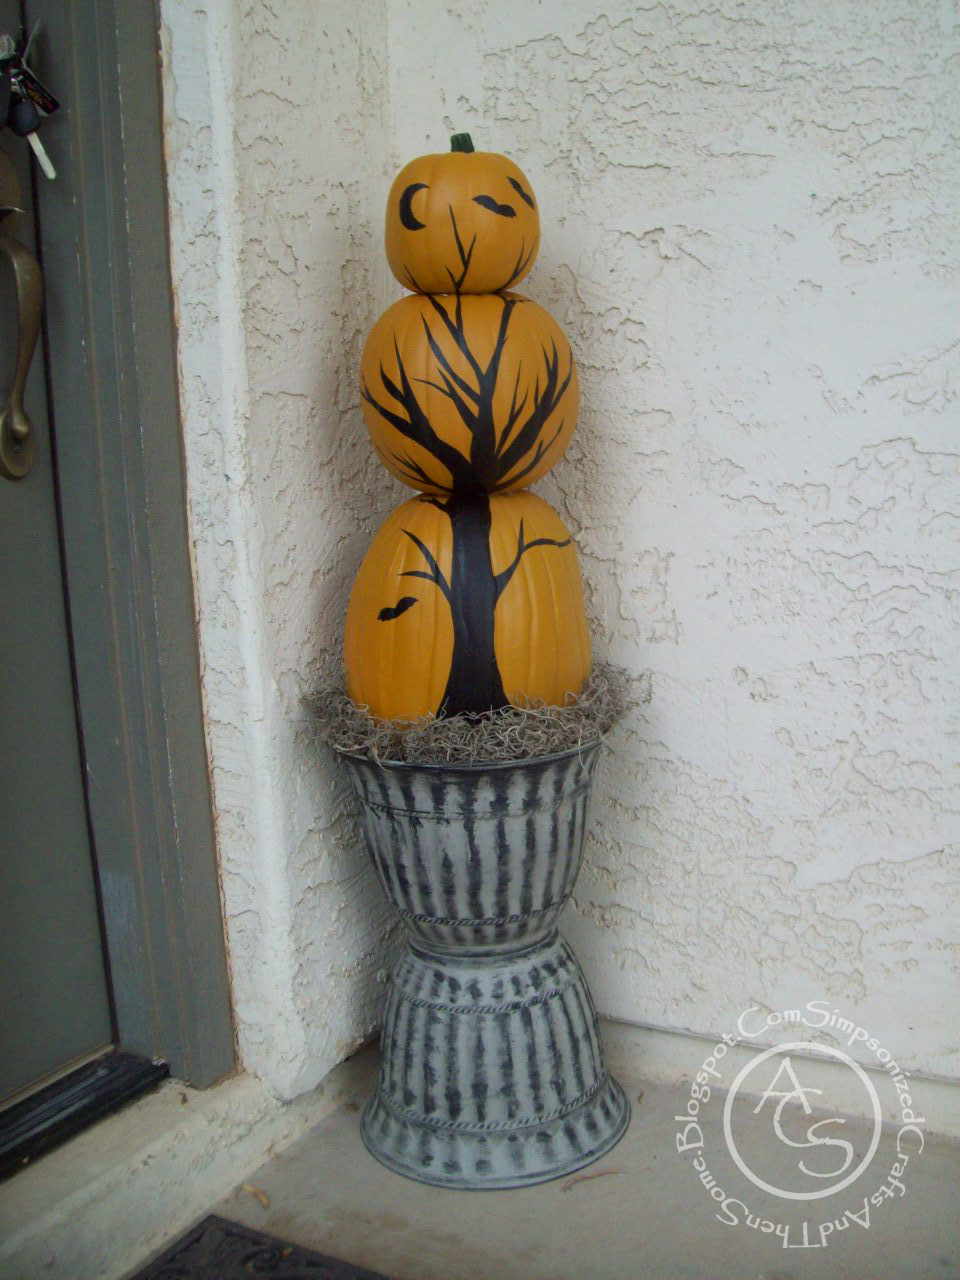 20 unique pumpkin carving ideas c r a f t Unique pumpkin decorating ideas